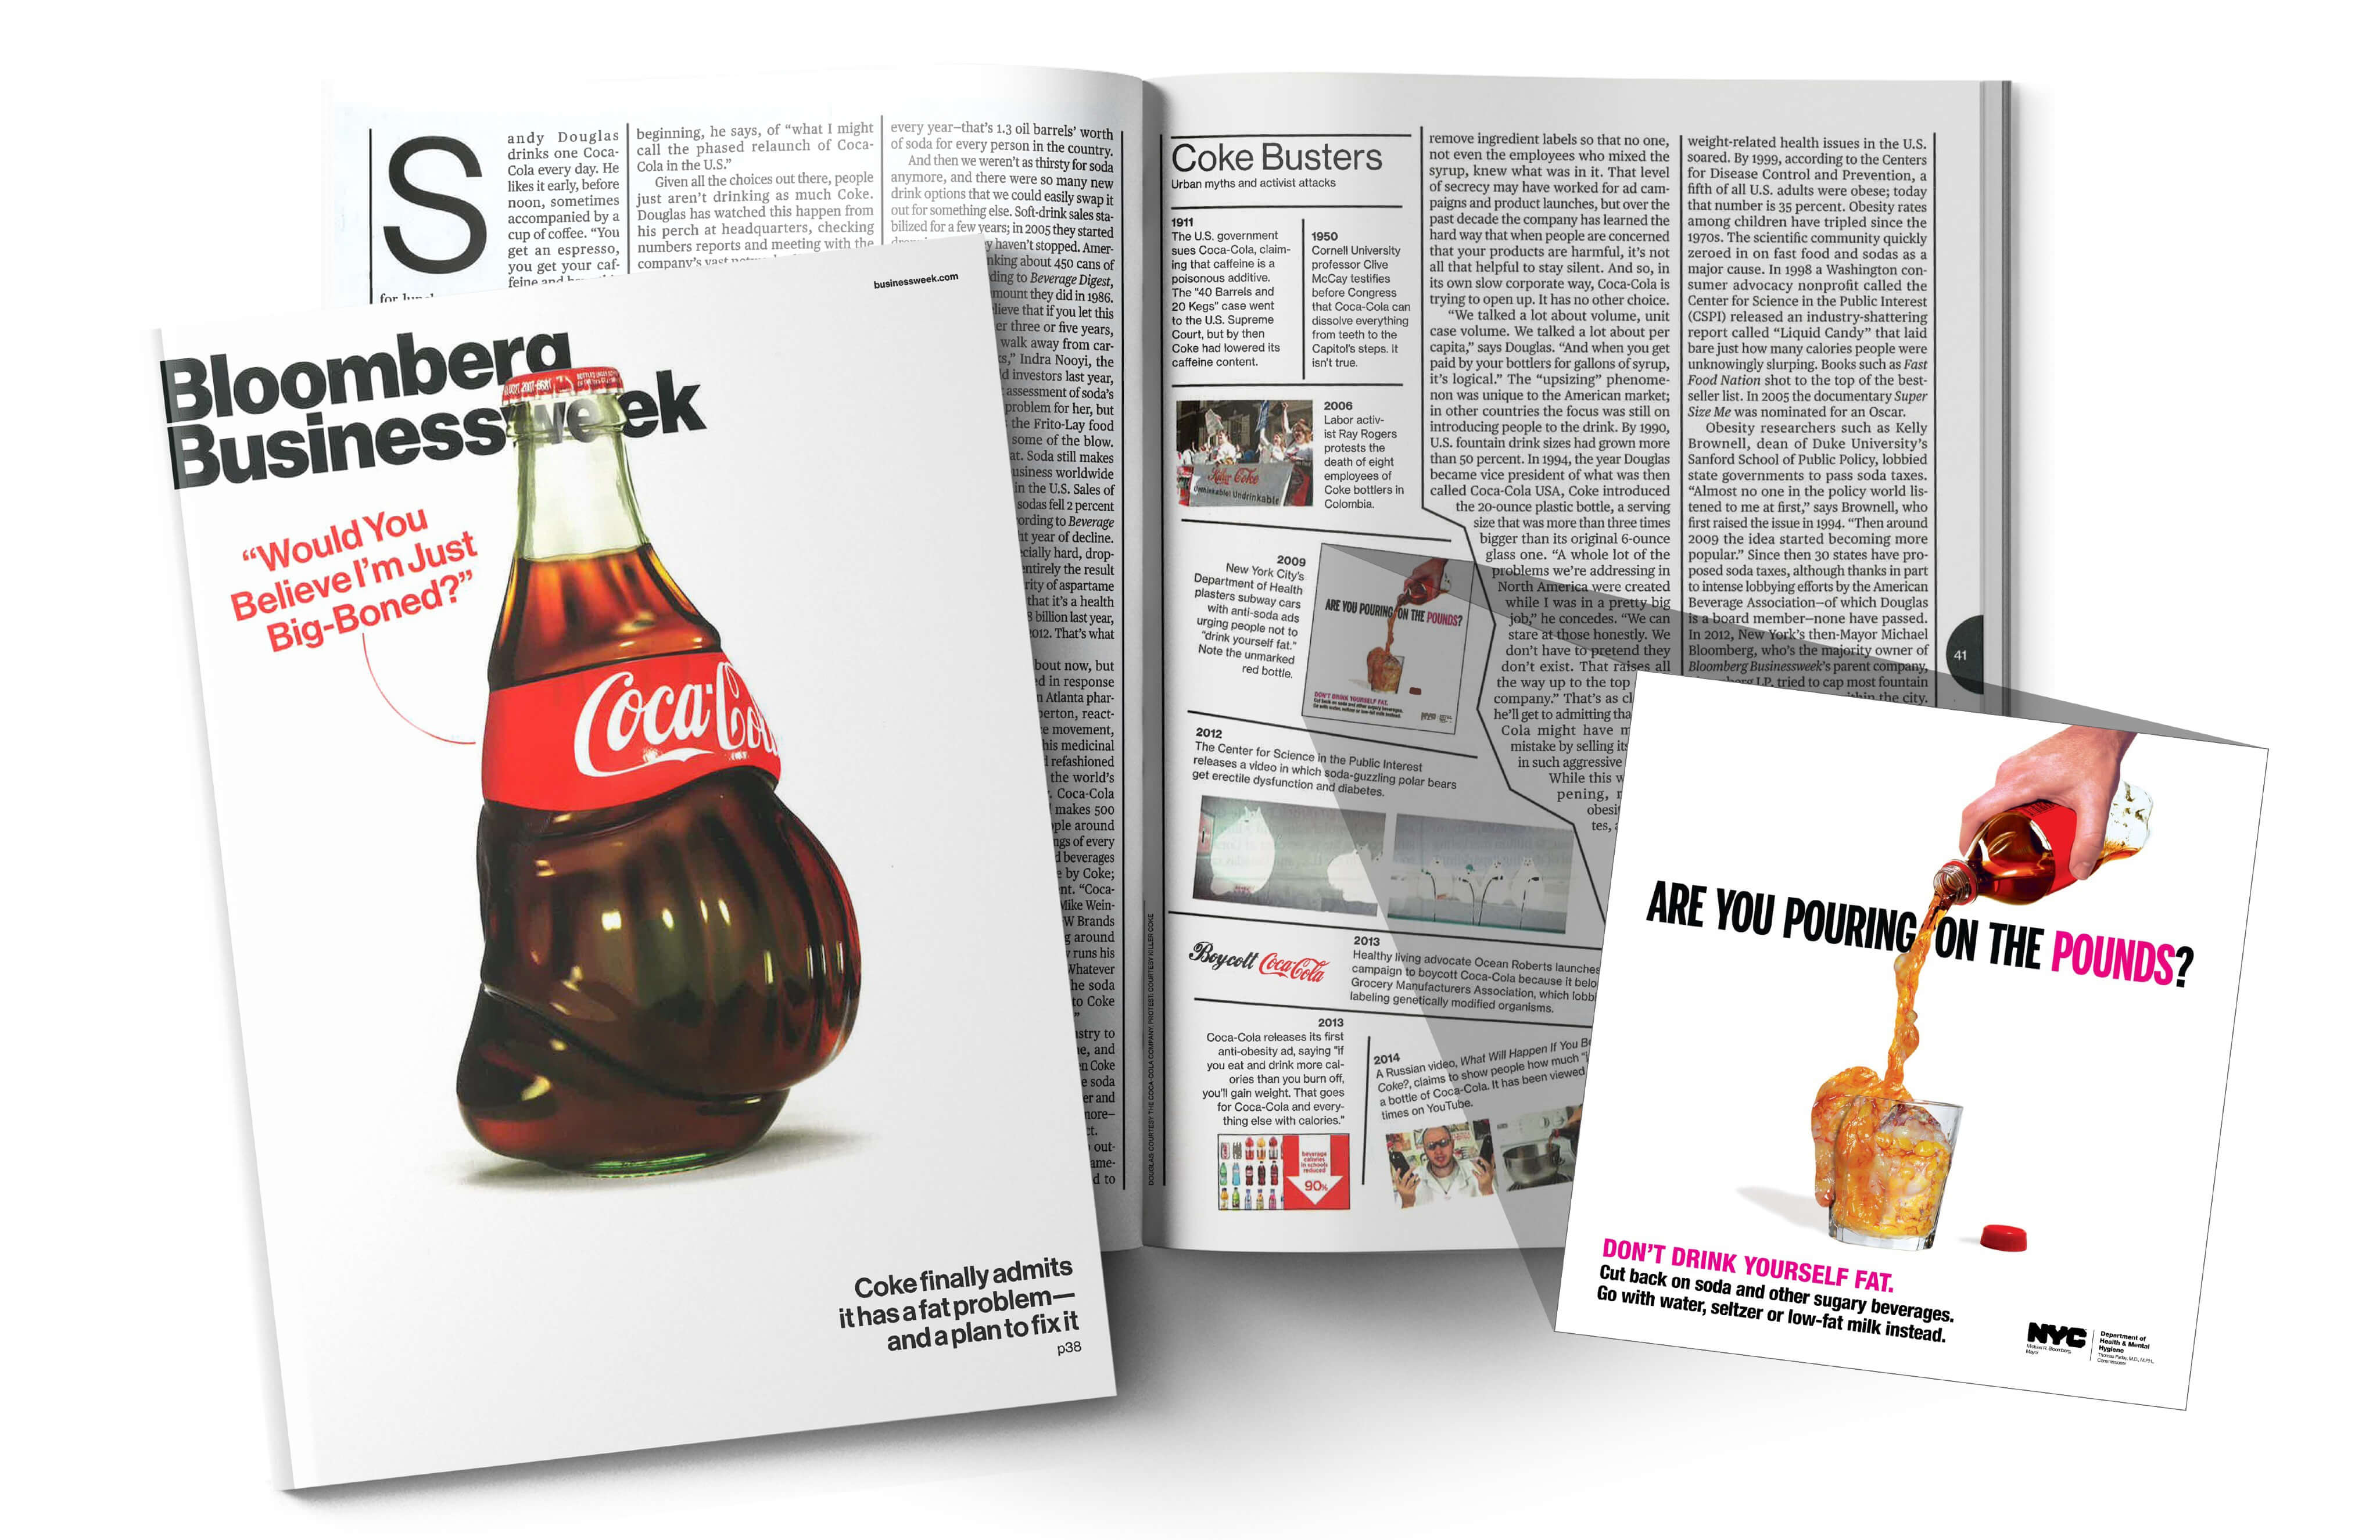 "Bloomberg Businessweek magazine cover of a obese Coca-Cola bottle that says ""Would you believe I'm just big-boned?"""